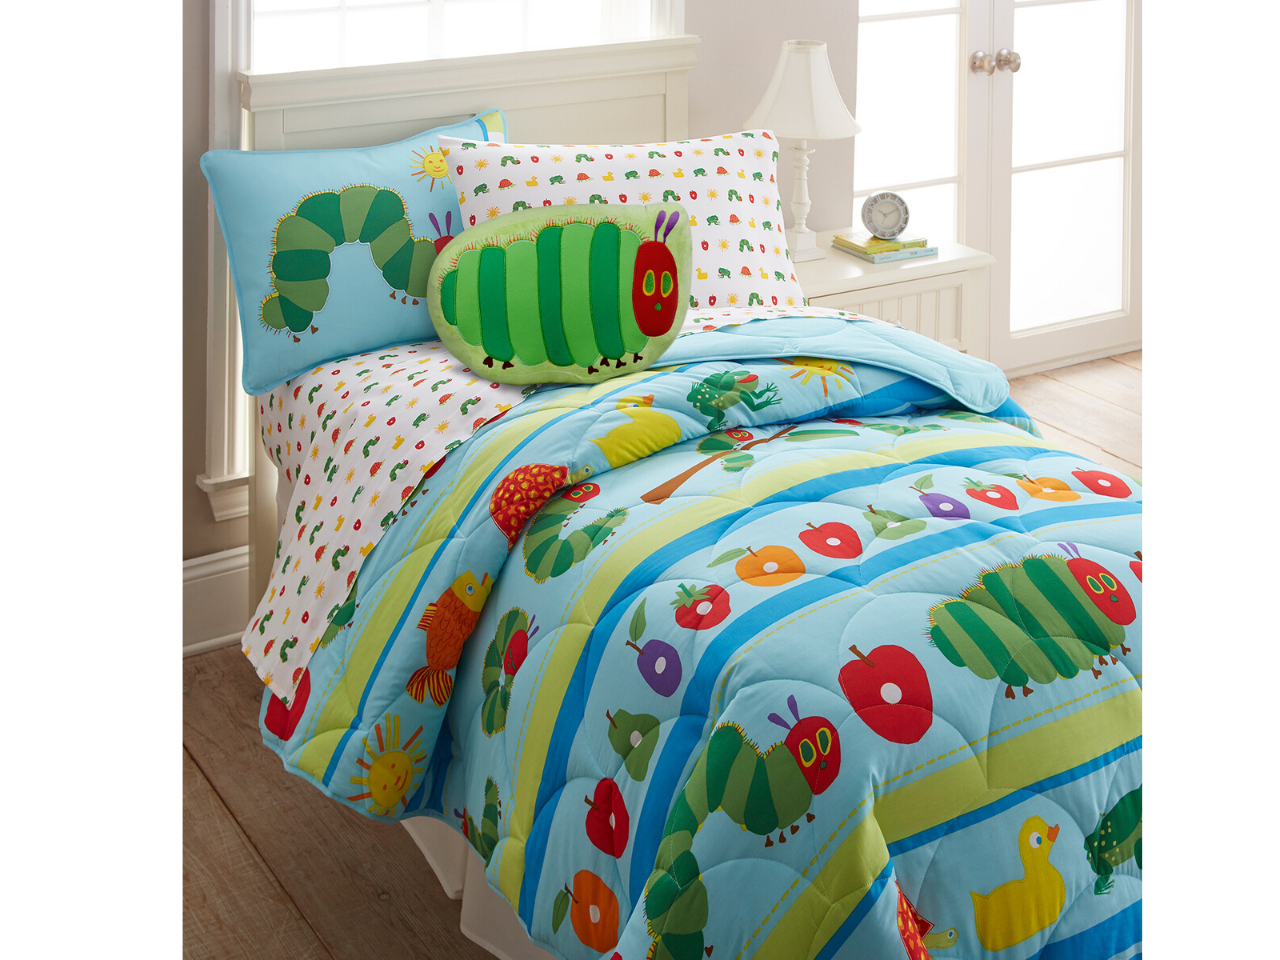 Plush Pillow - The Very Hungry Caterpillar